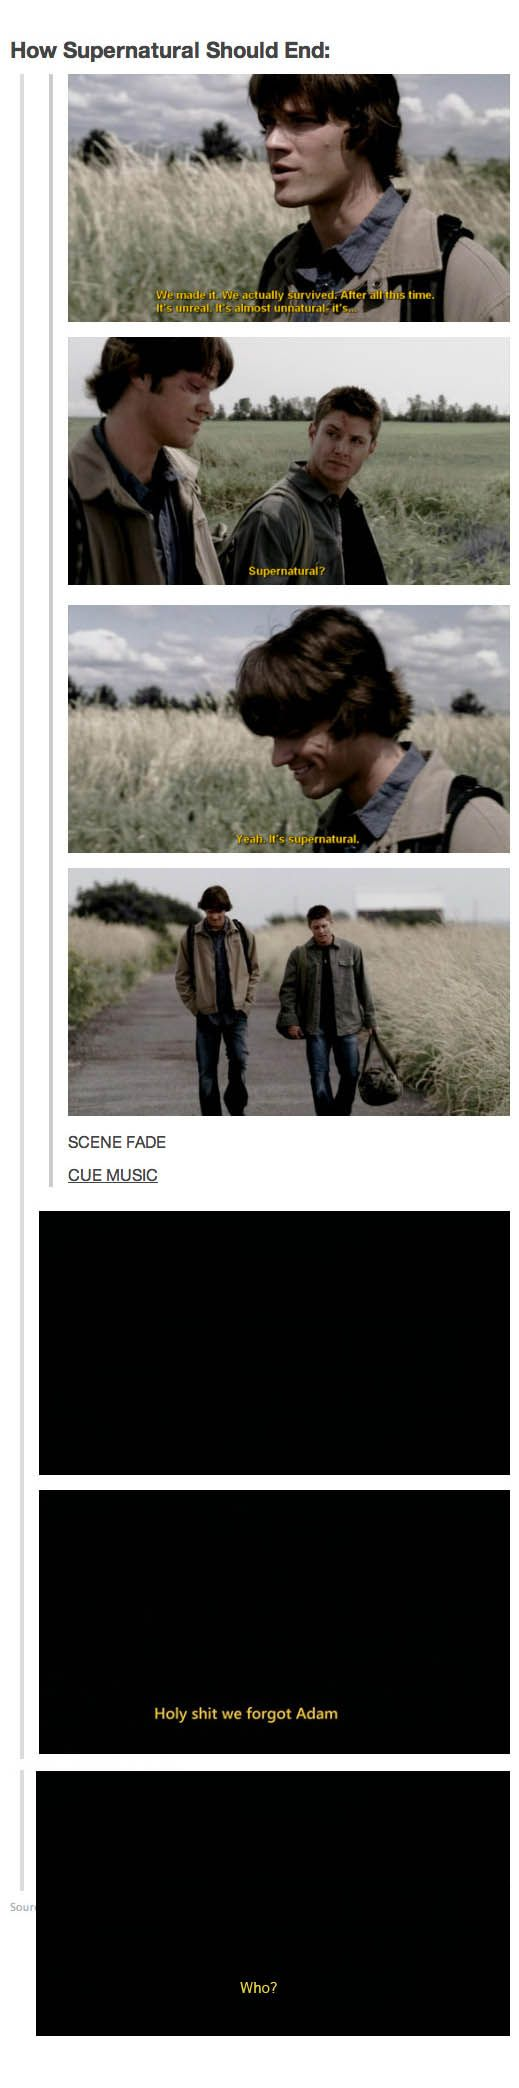 ;) Lol this is funny but I truly think the show should end with sam and dean dying yes I know that would be sad but common are they really gonna move on and have kids and die from a heart attack or somthing? Ah hell no!